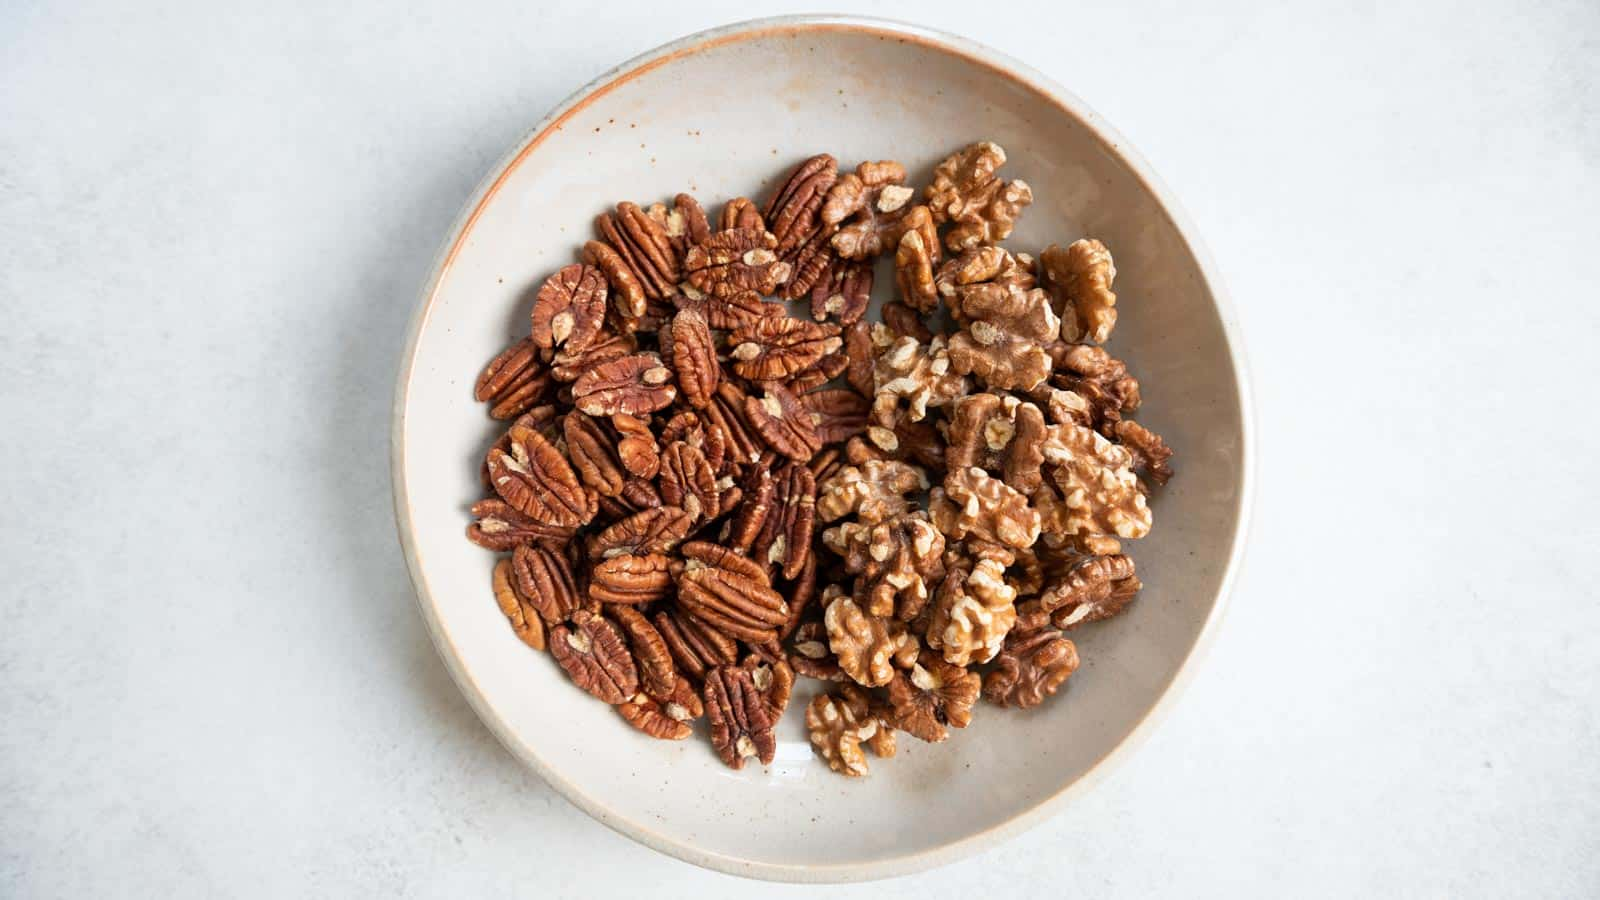 Roasted pecans and walnuts